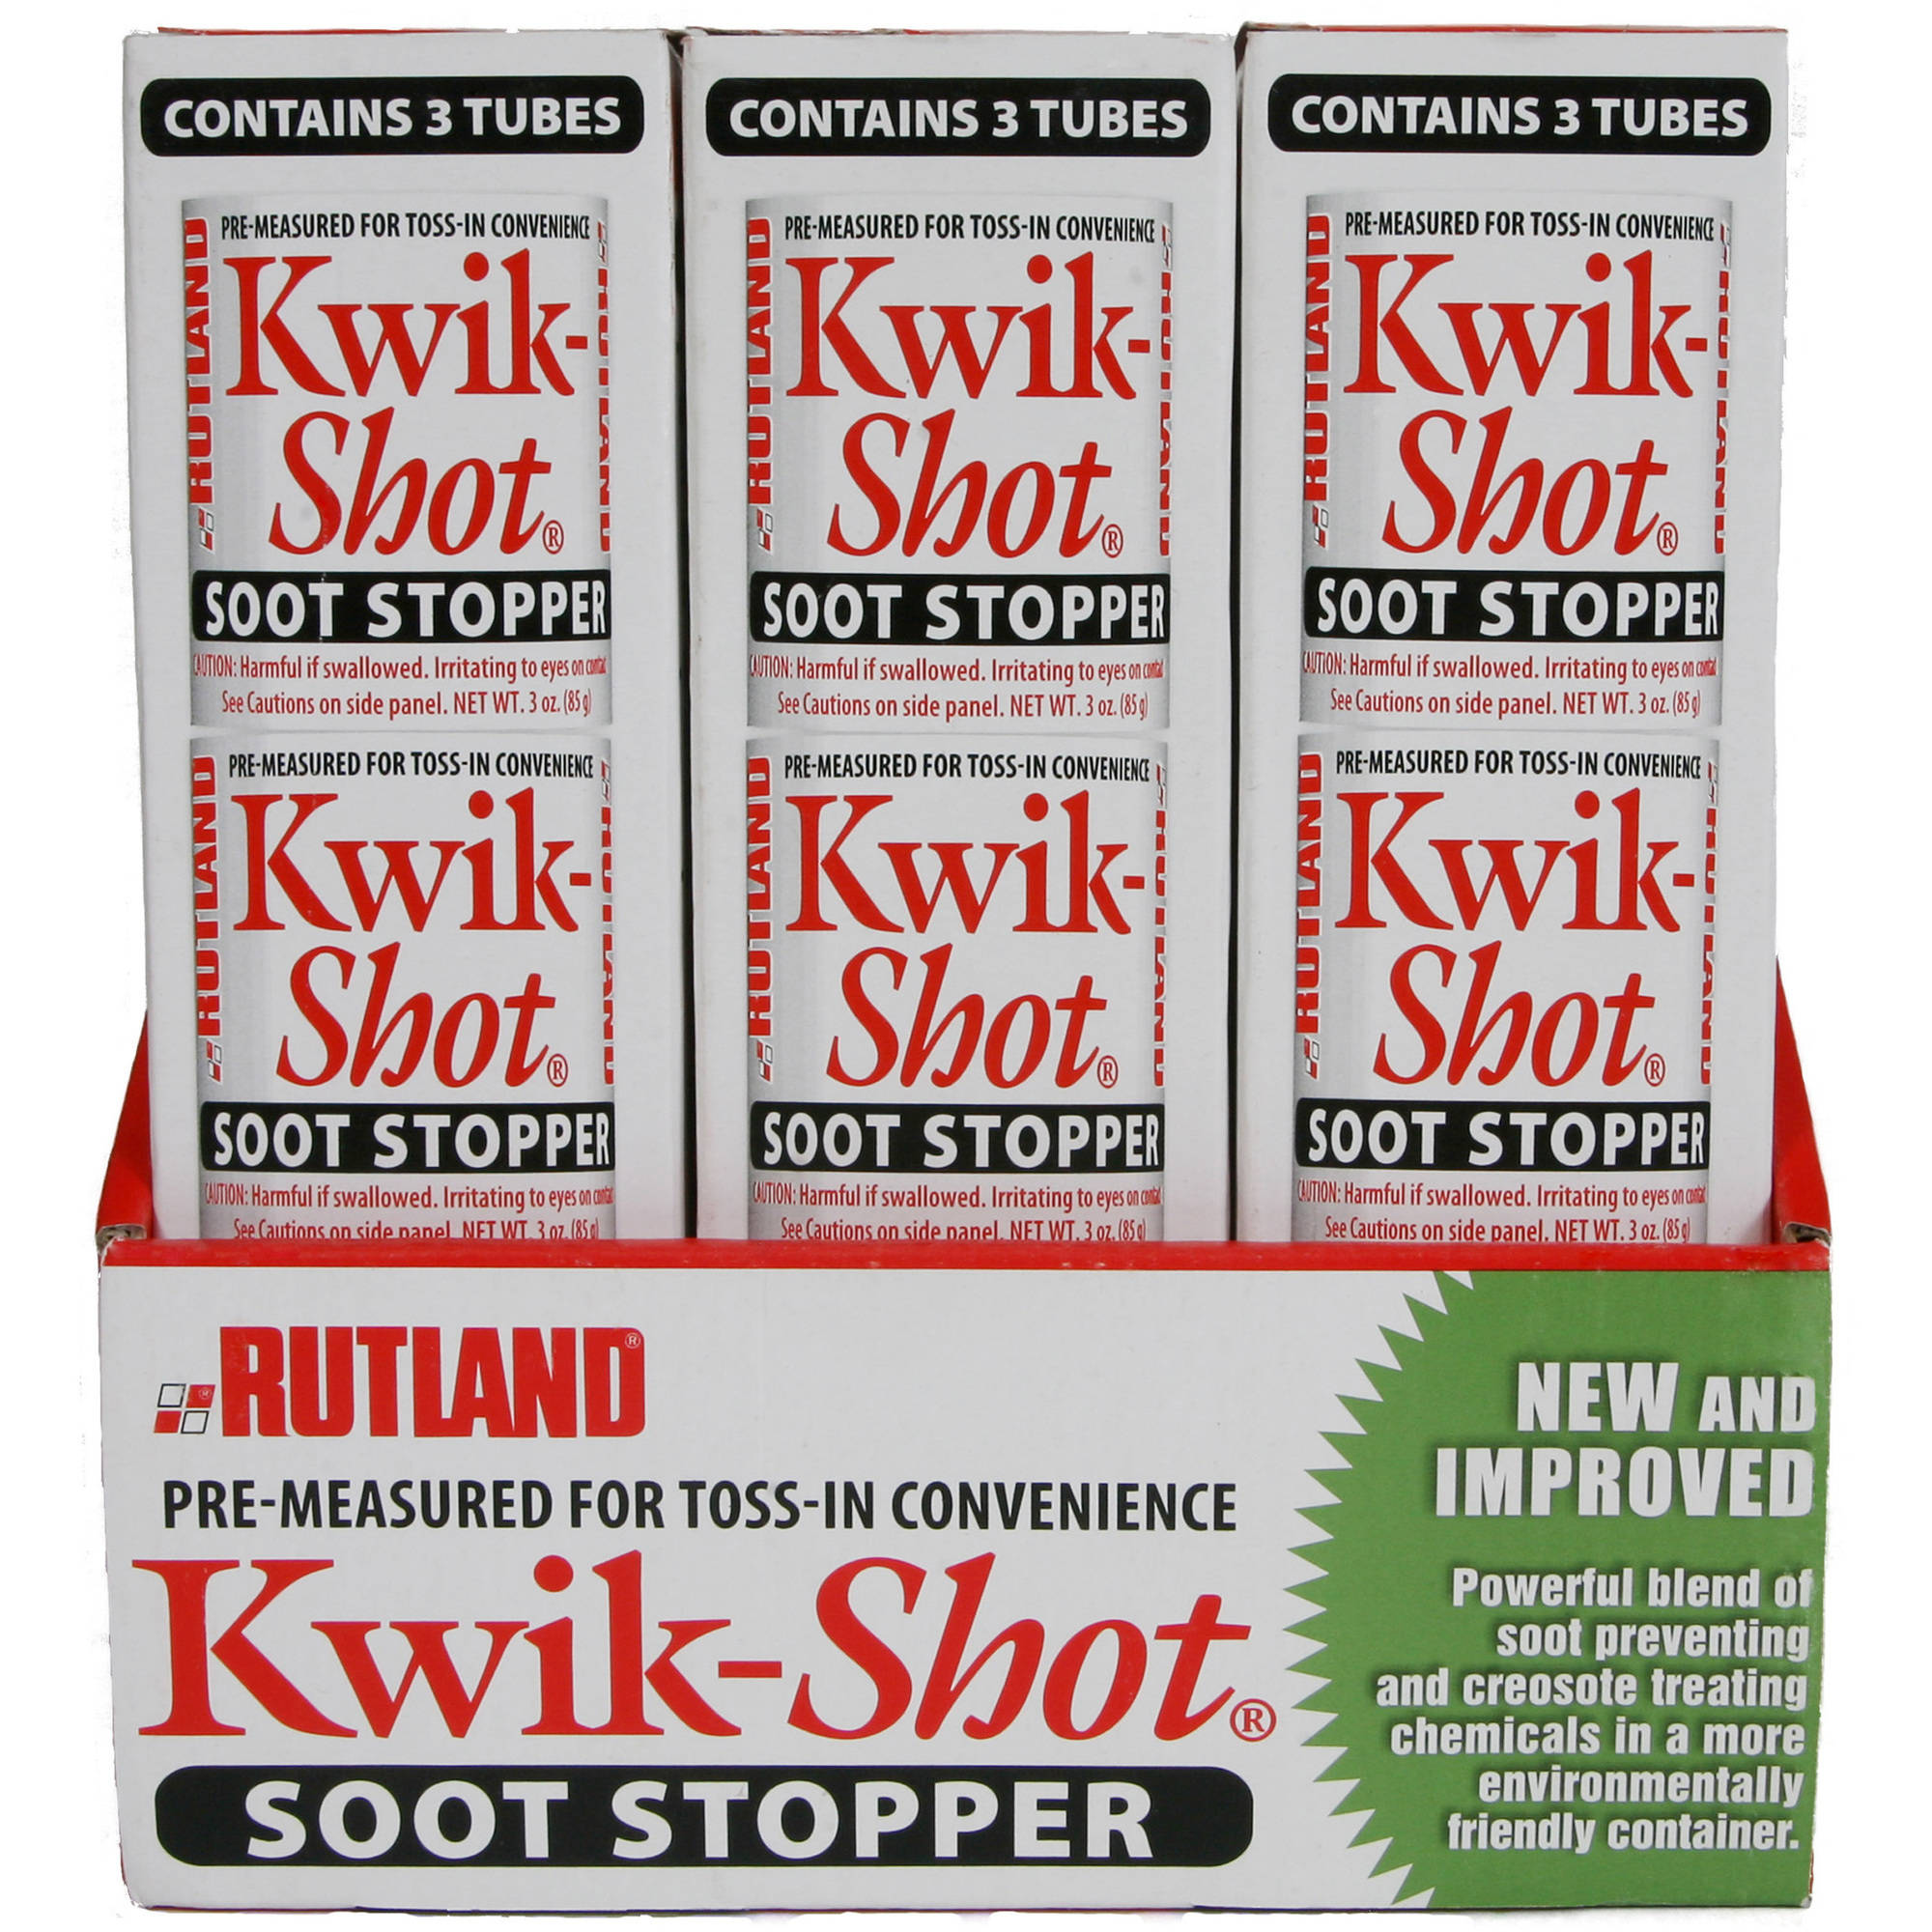 Rutland Kwik-Shot Soot Stopper, Canister, 3-Pack